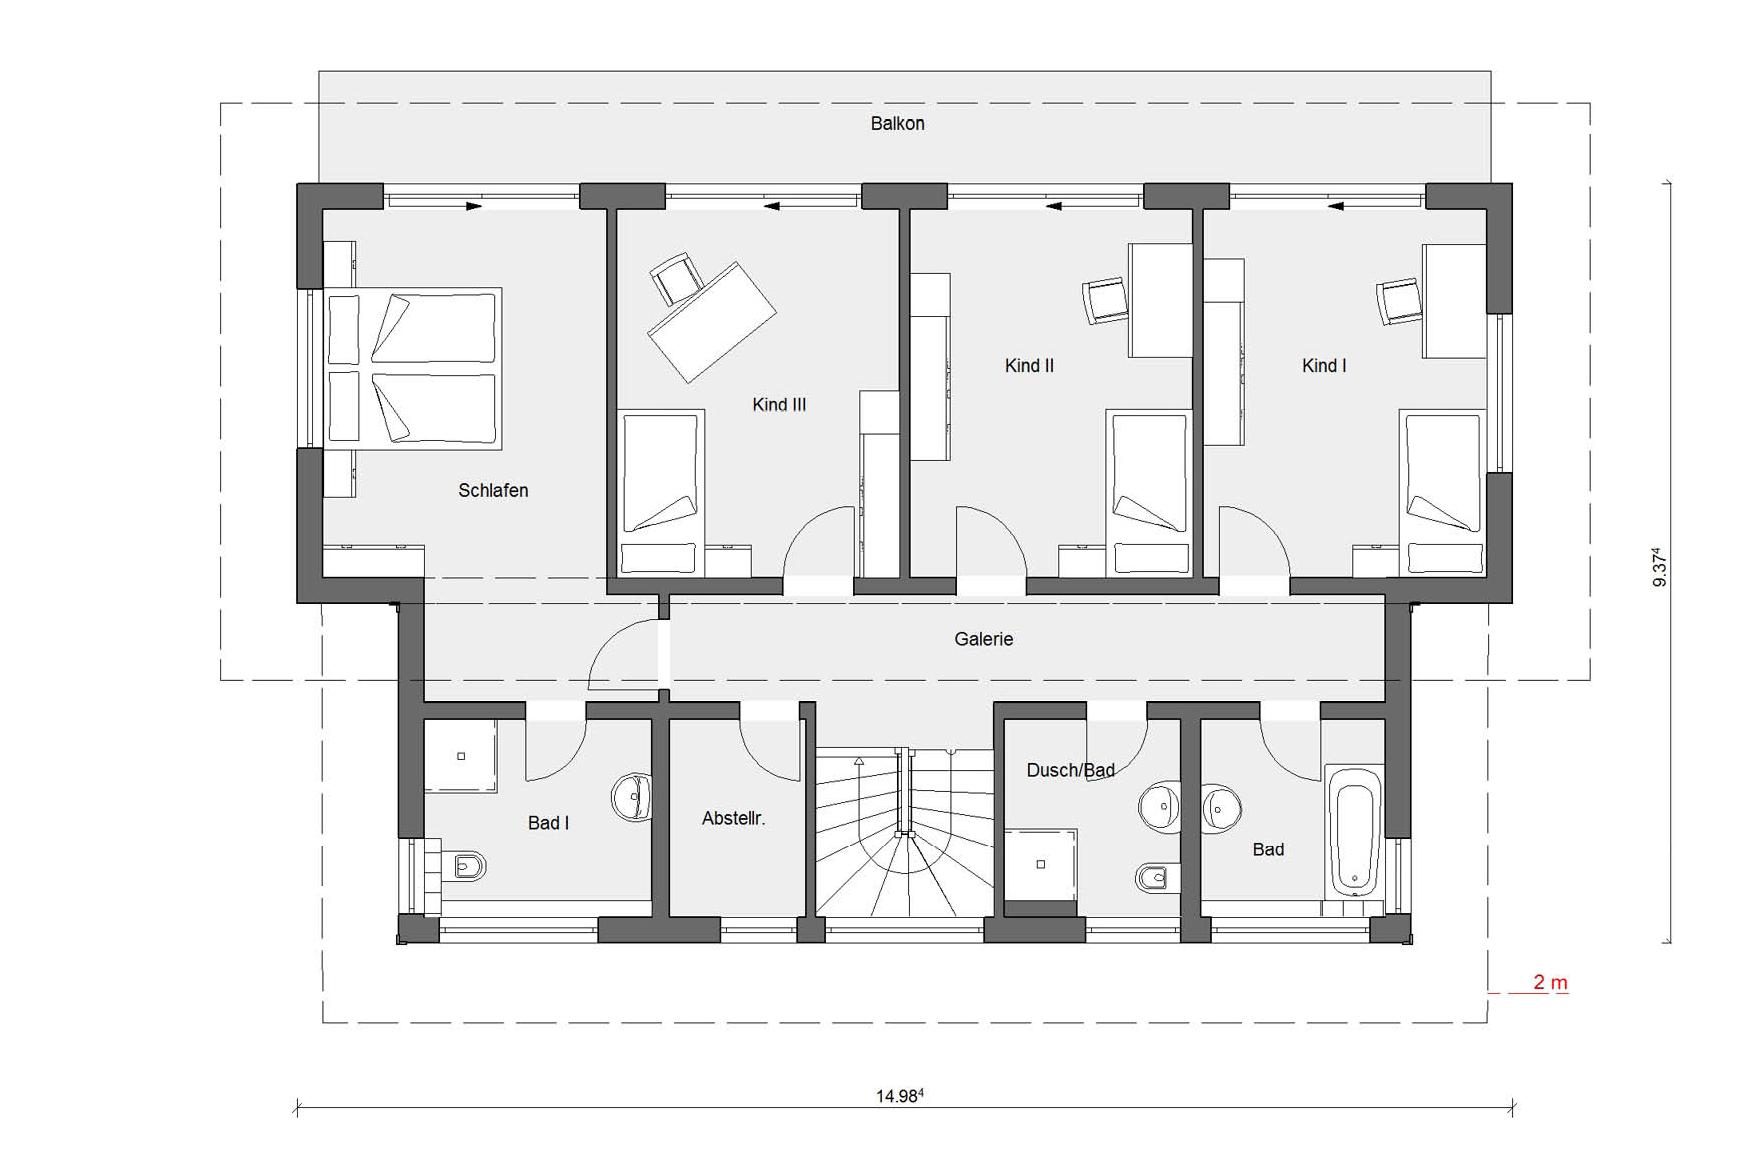 Floor plan attic E 15-217.1 prefabricated house with 200sqm